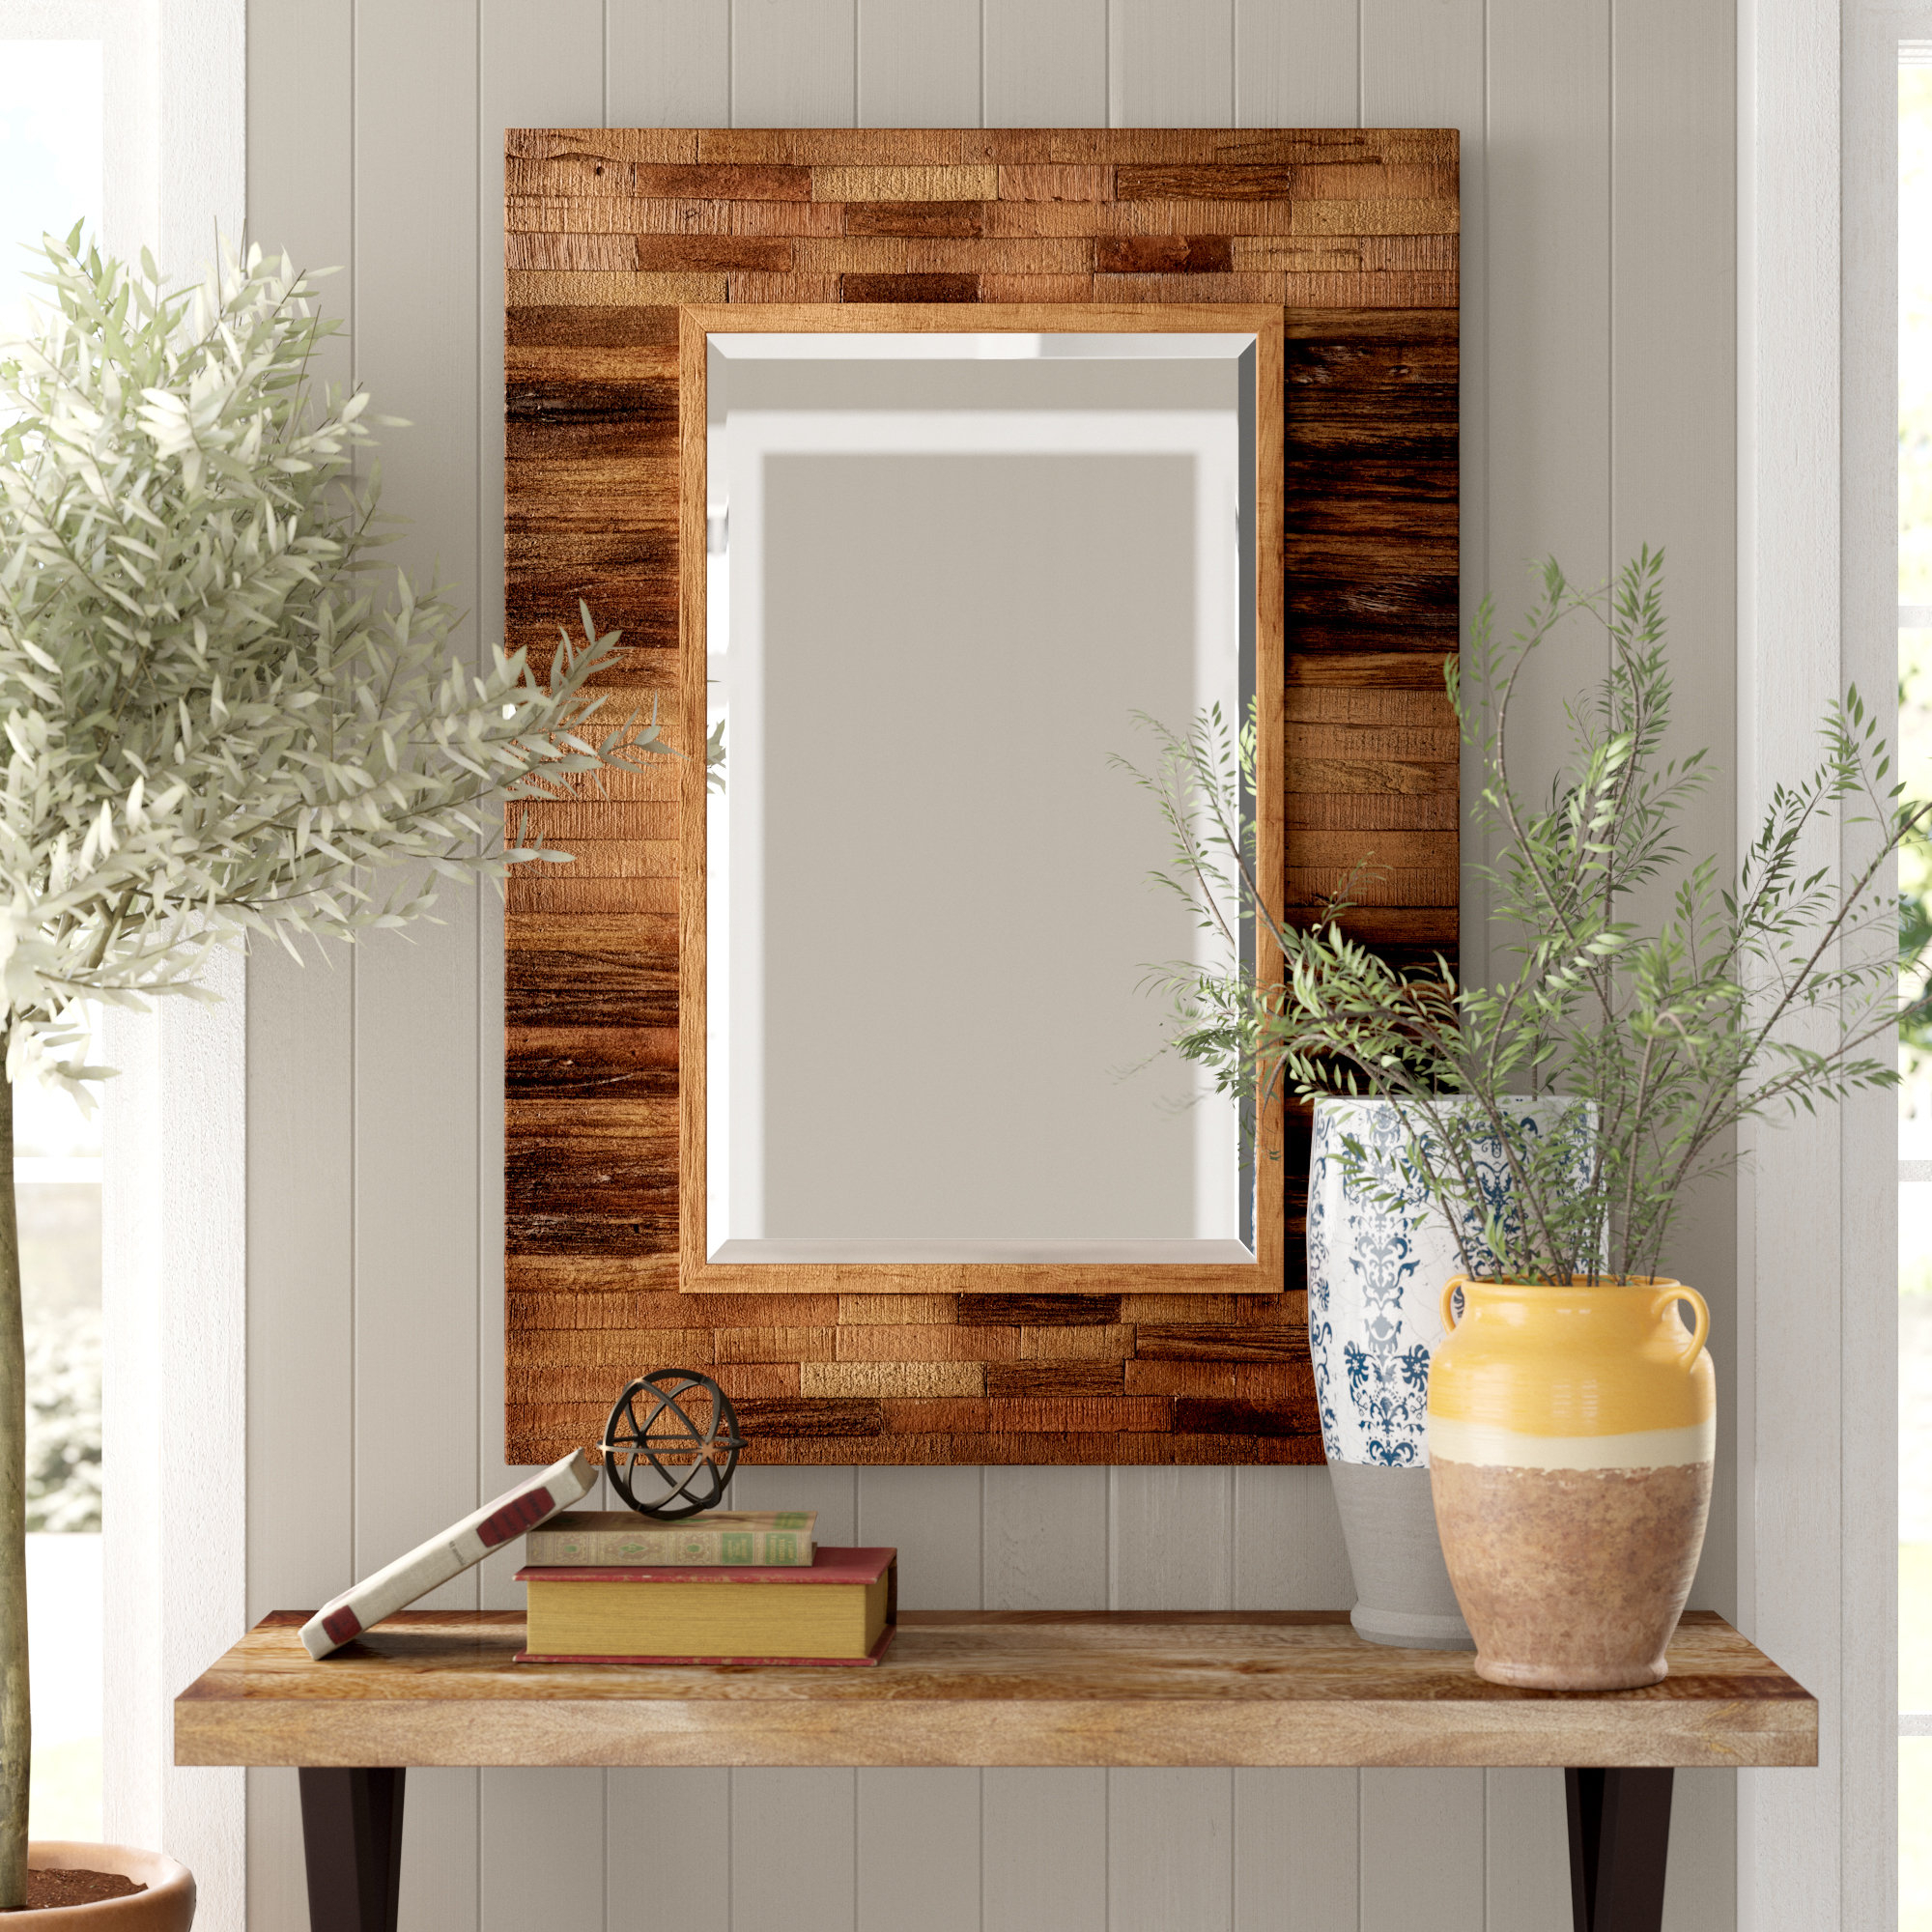 Booth Reclaimed Wall Mirrors Accent With Most Popular Booth Reclaimed Wall Mirror Accent (View 3 of 20)